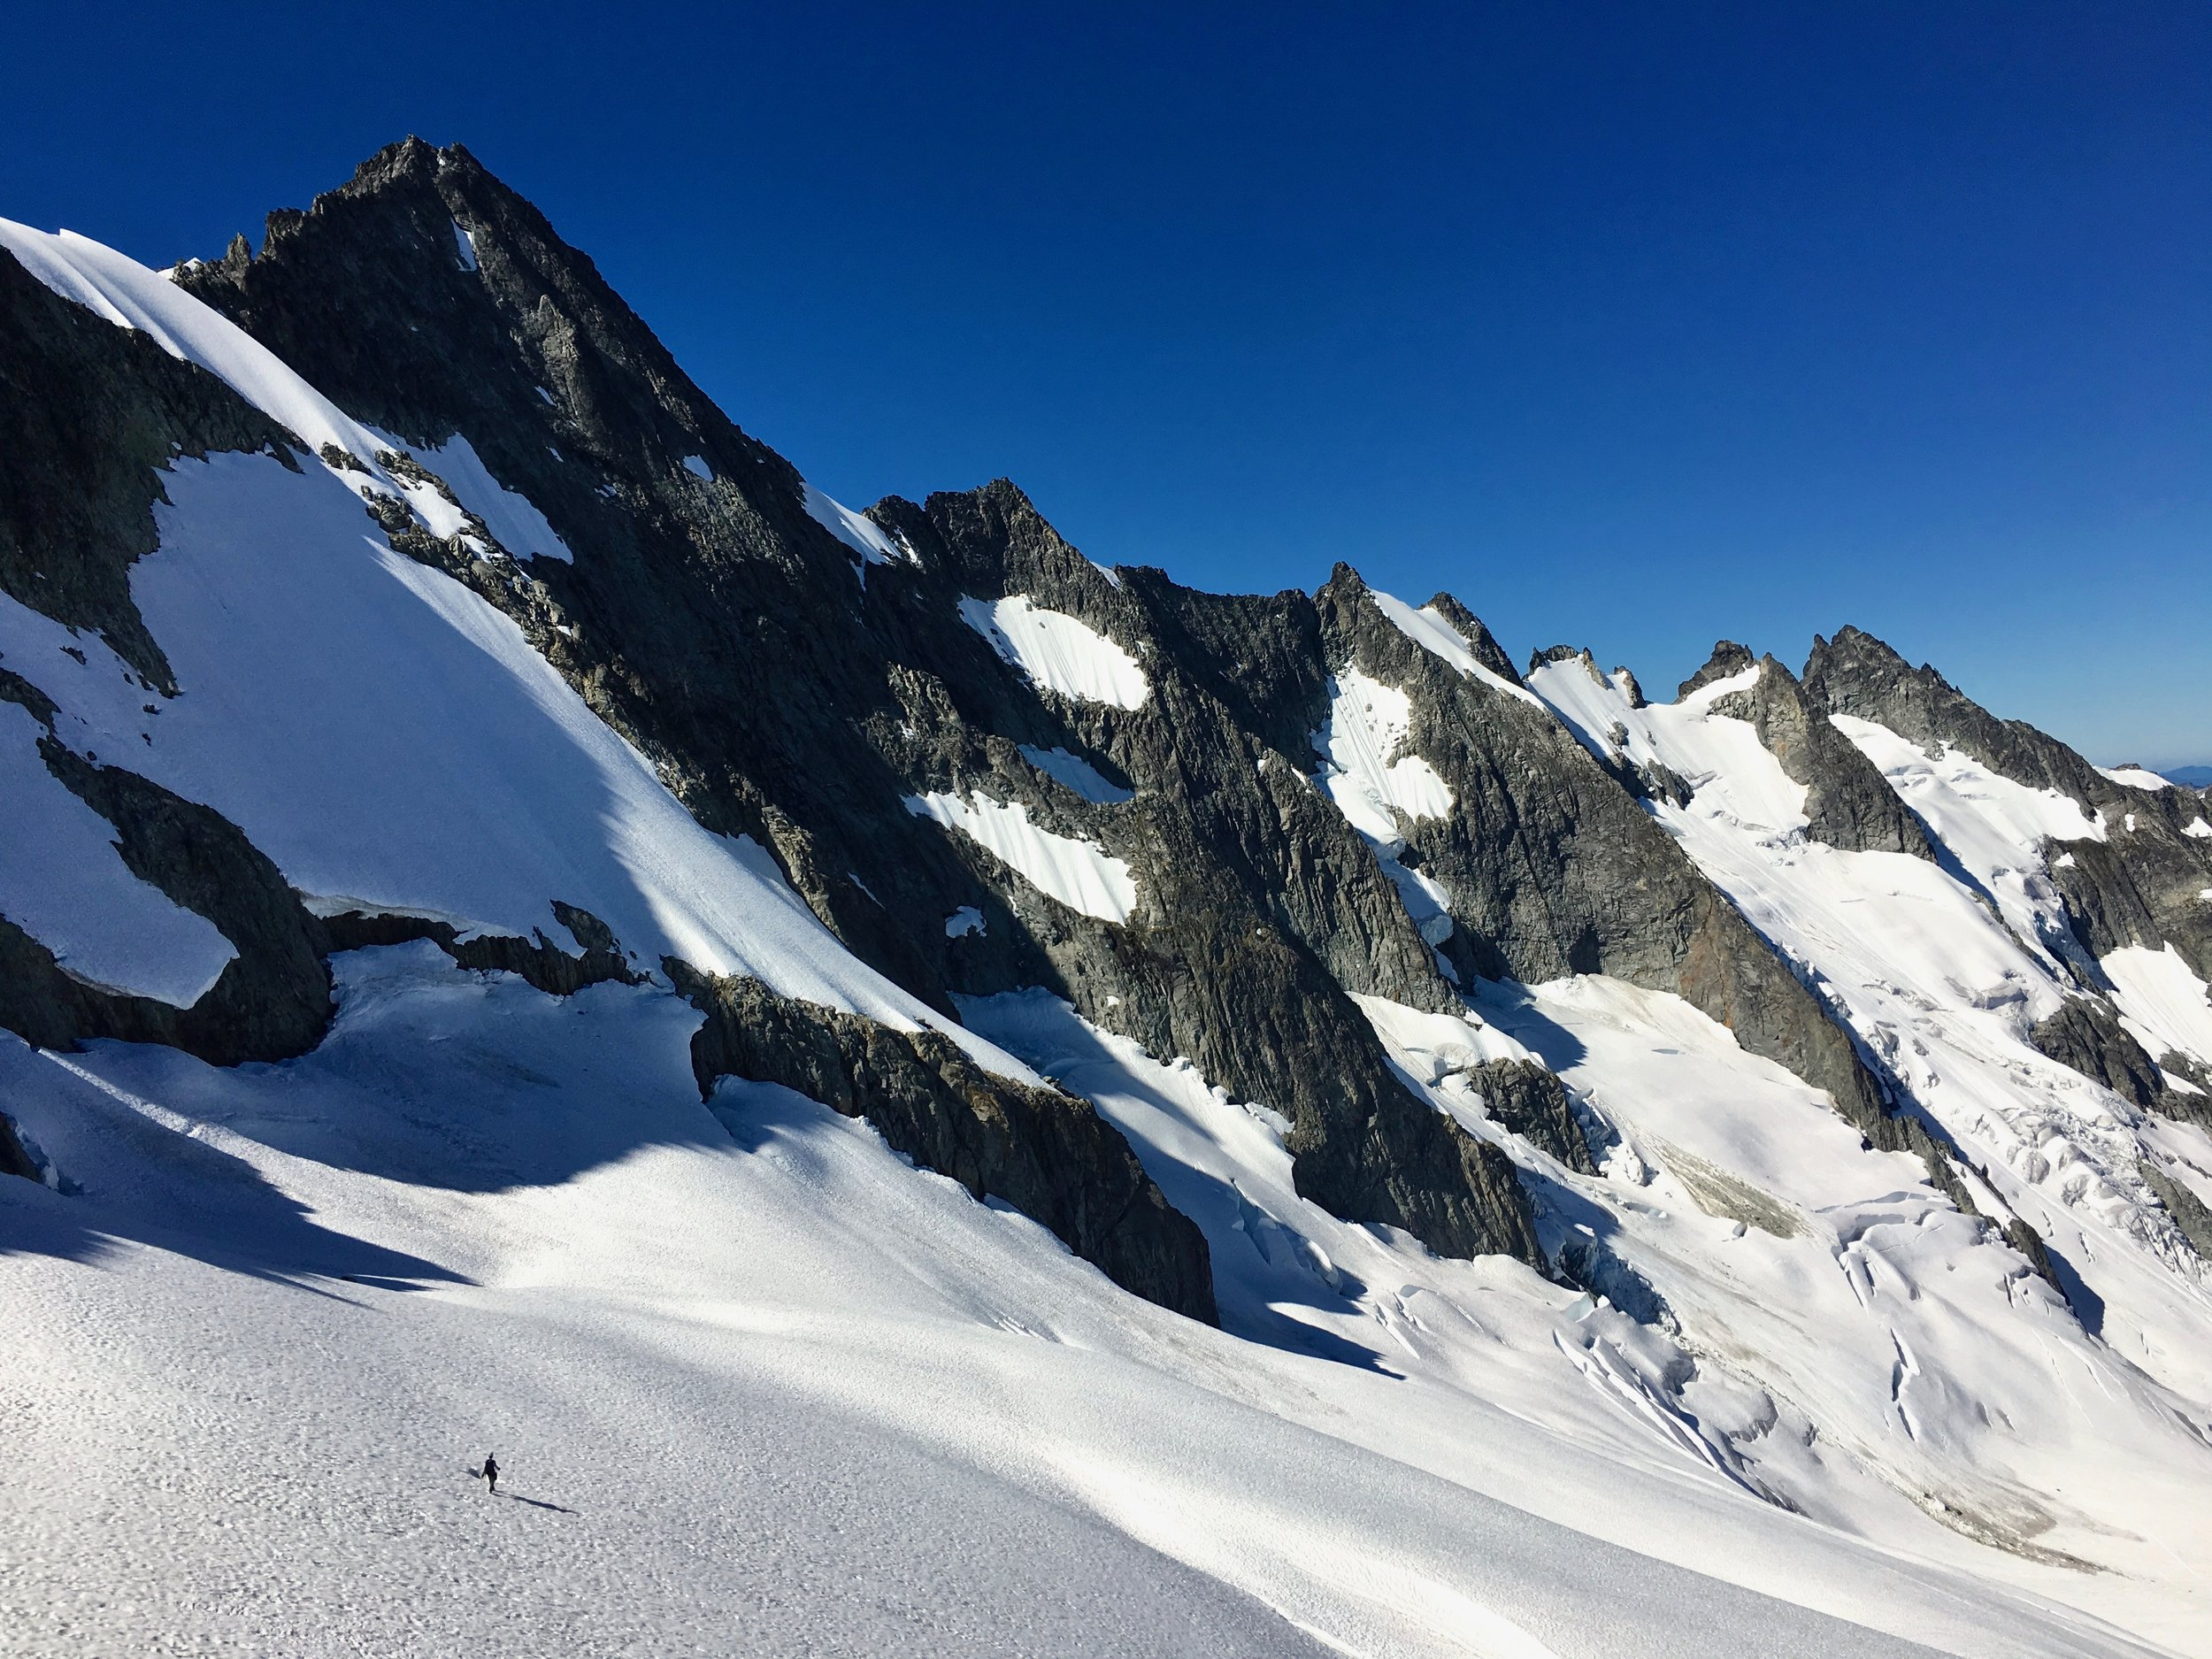 Heading for the toe of the ridge